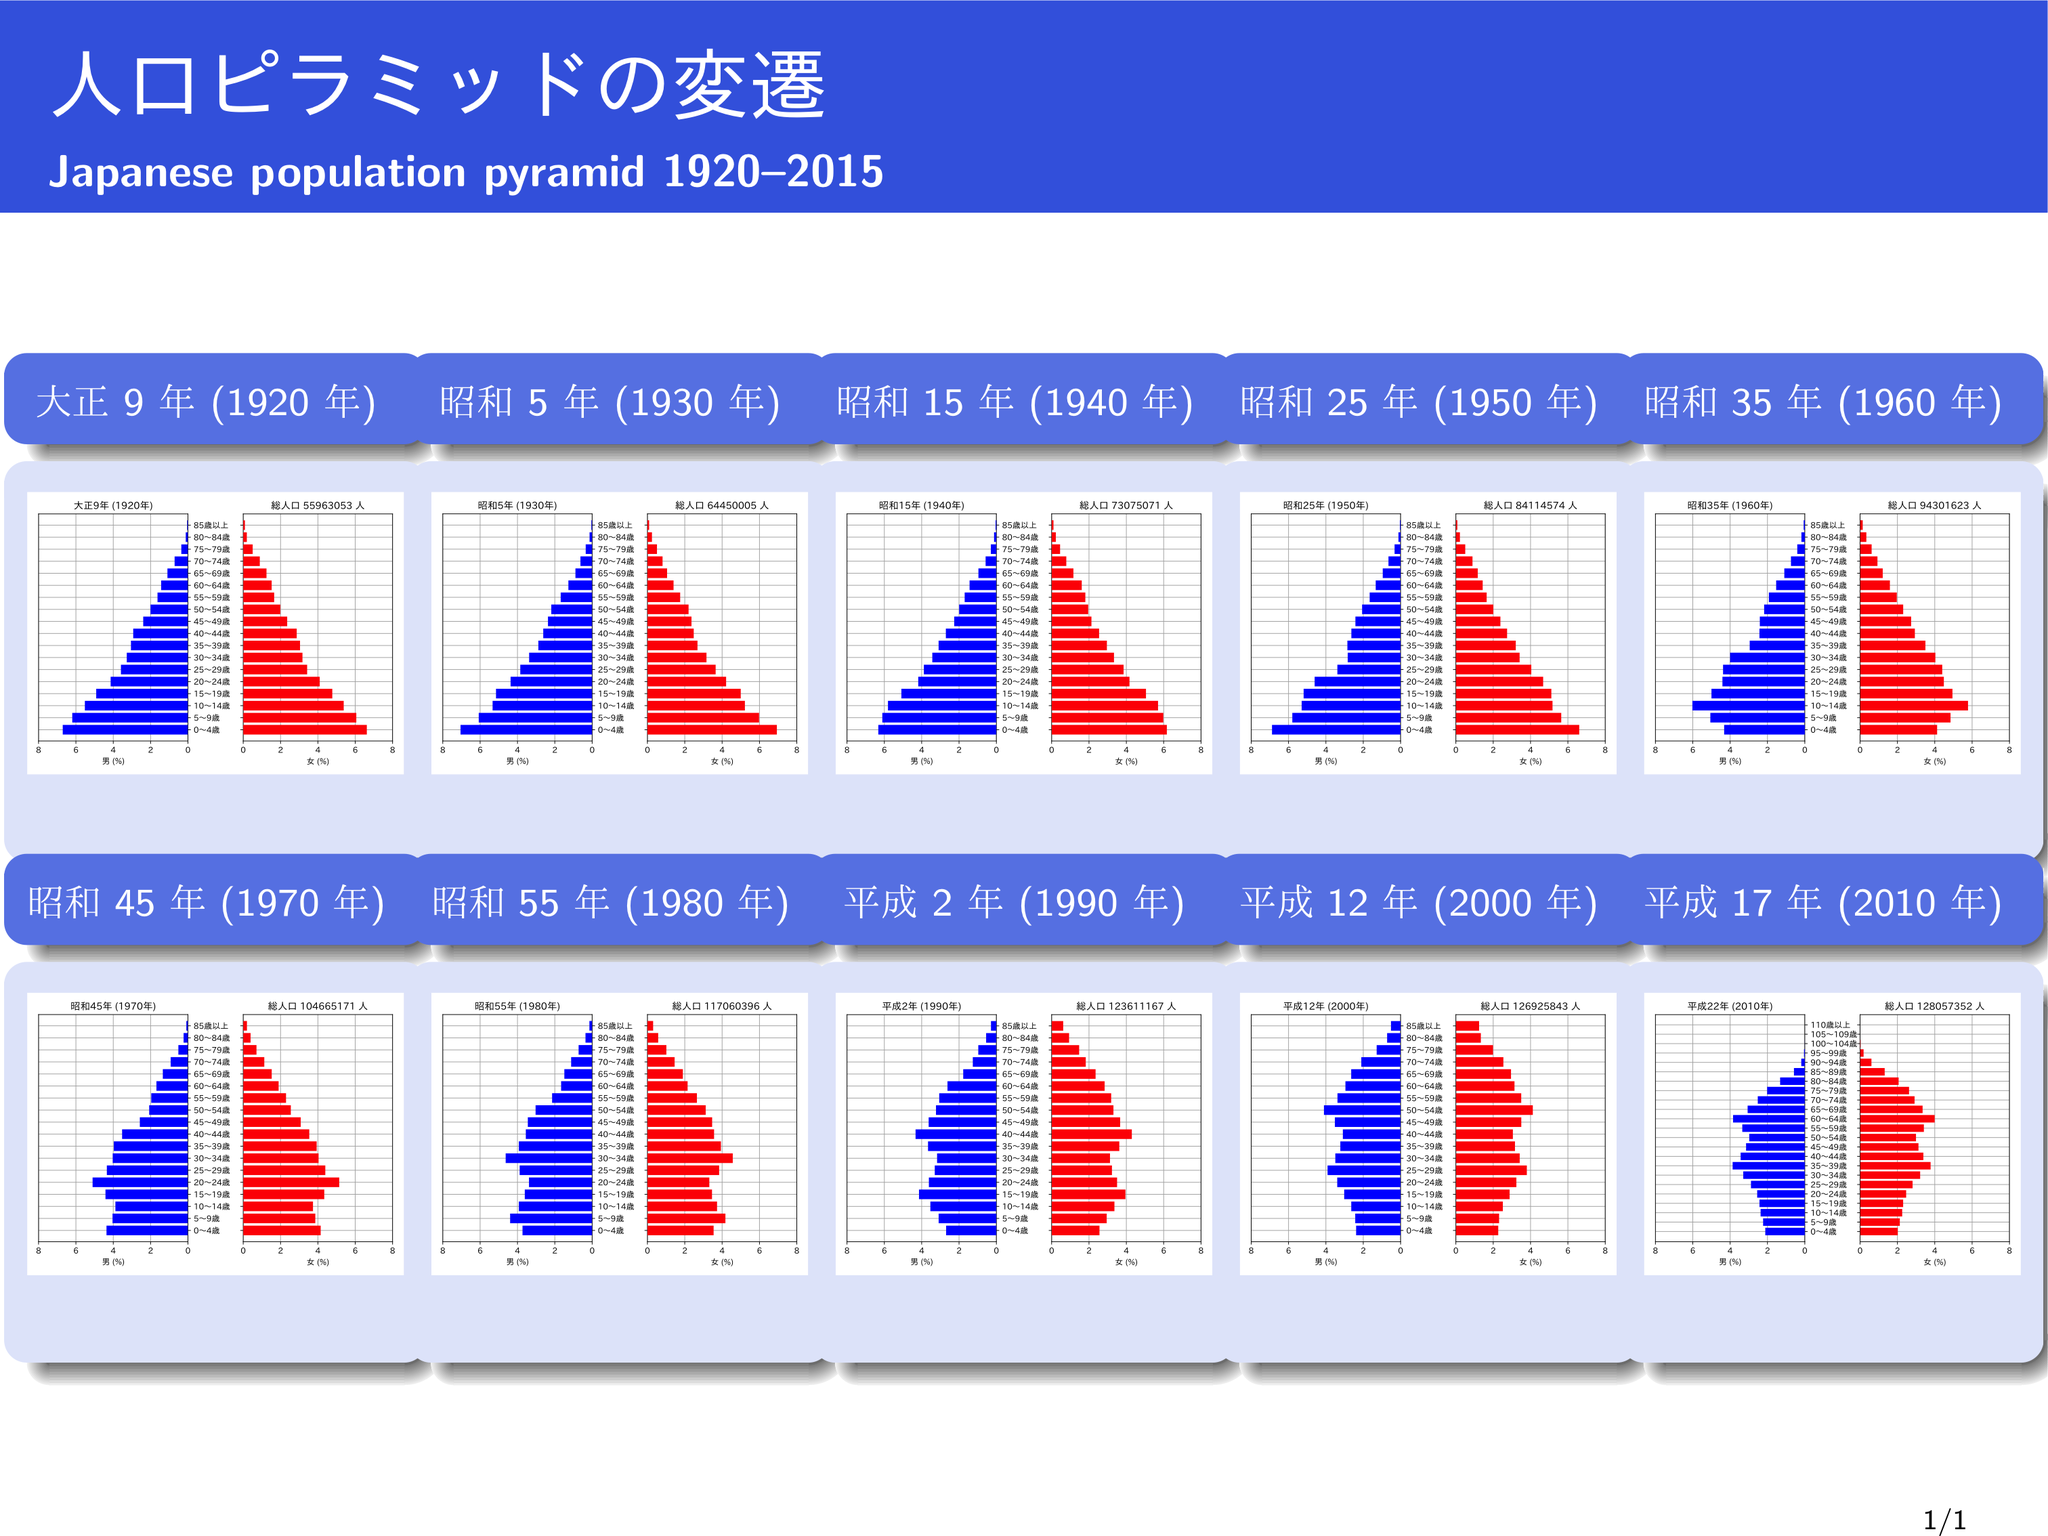 Population pyramid of Japan (1920-2015)